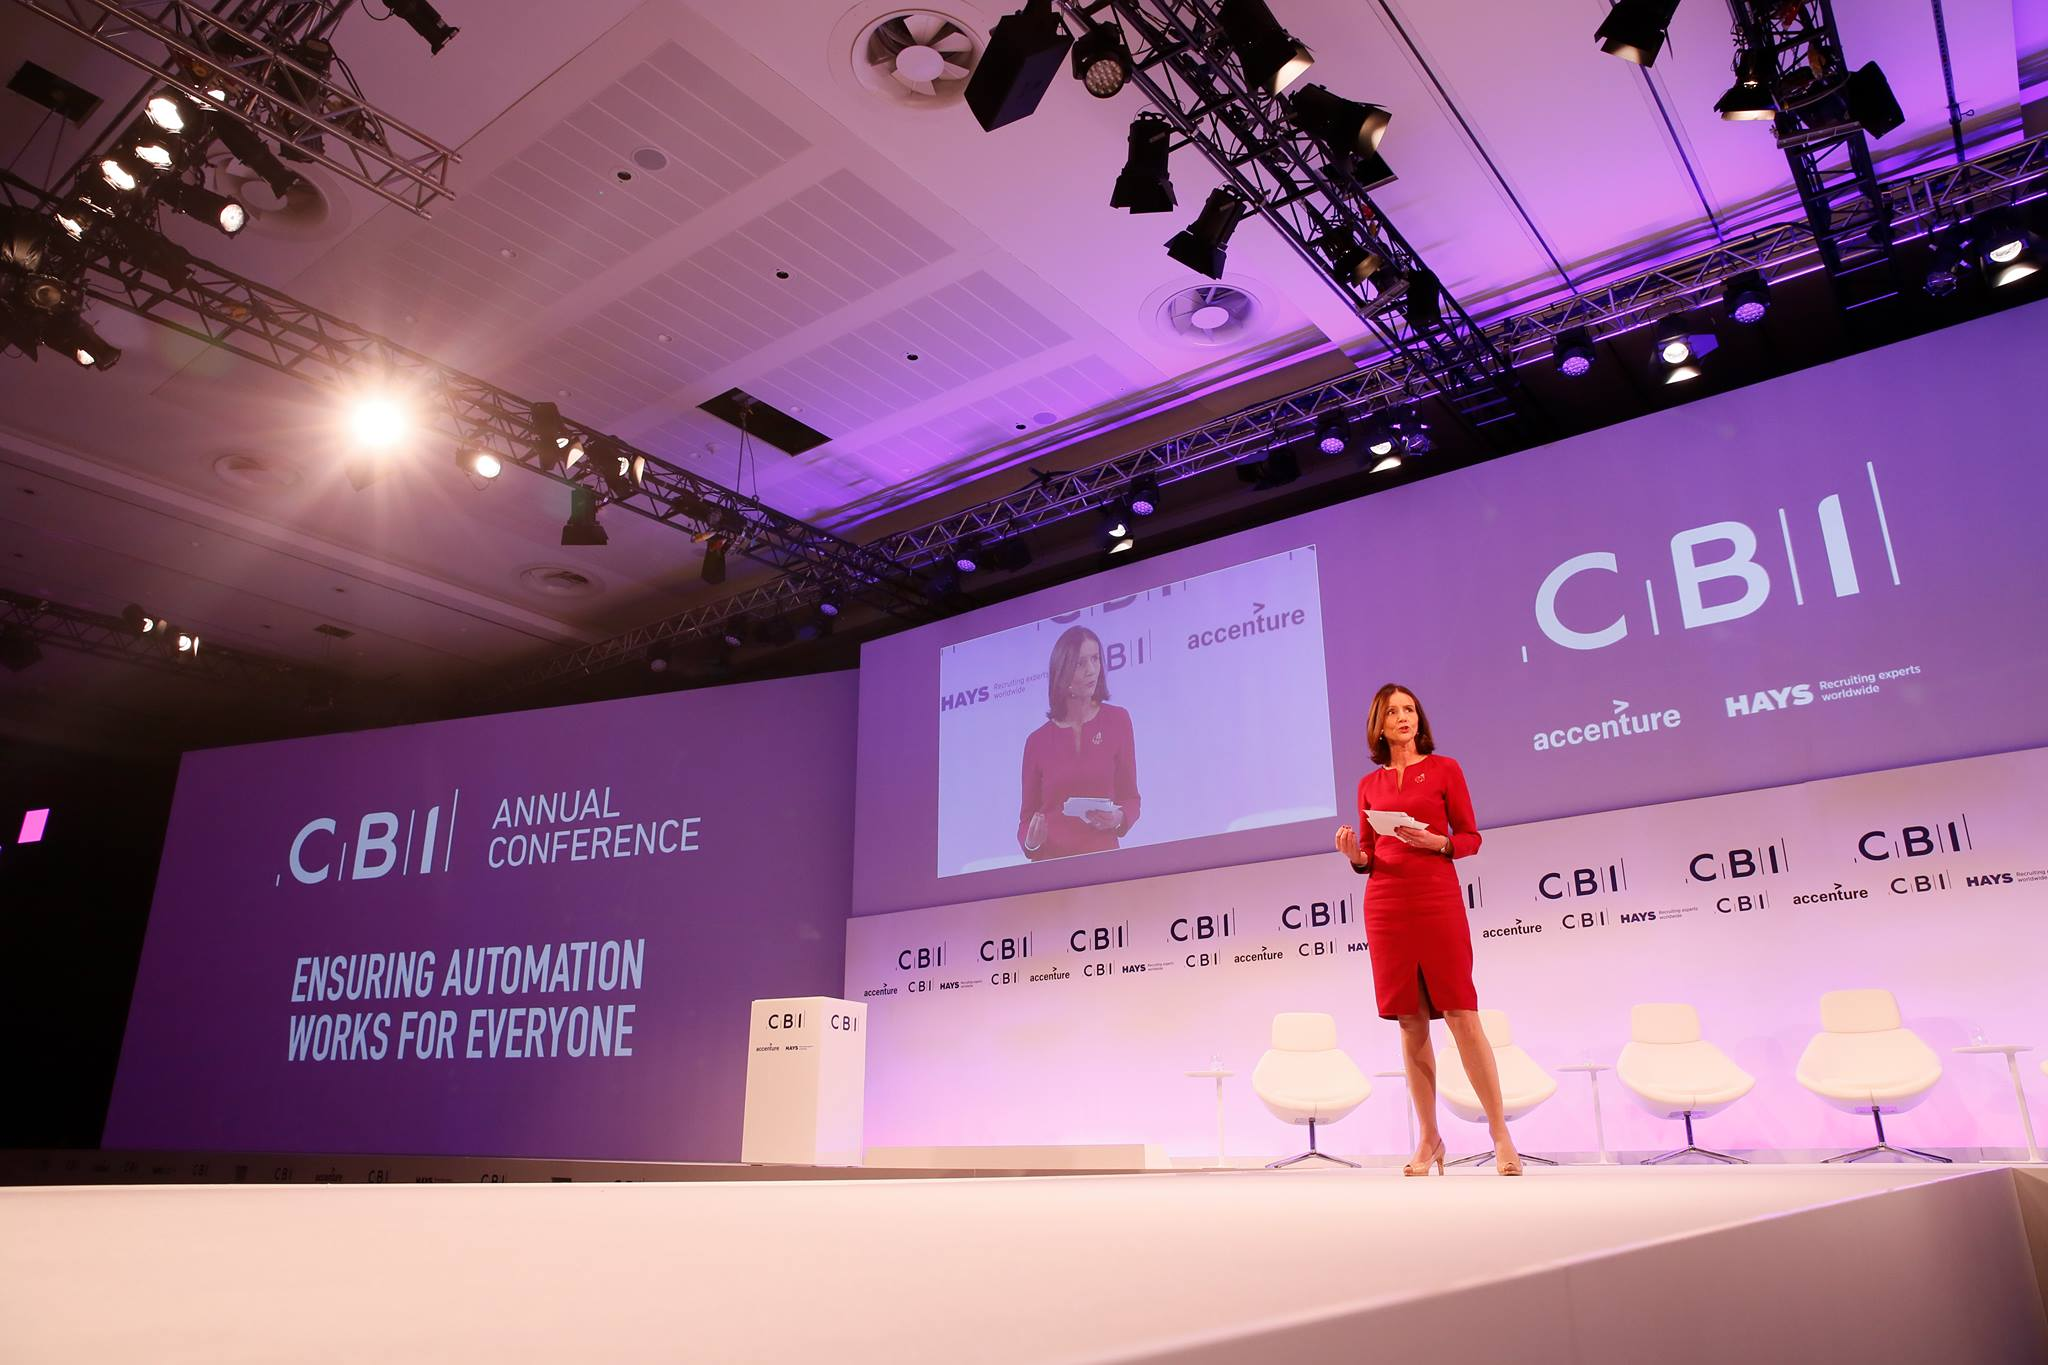 Annual Conference seminar at CBI (Confederation of British Industry) in the UK